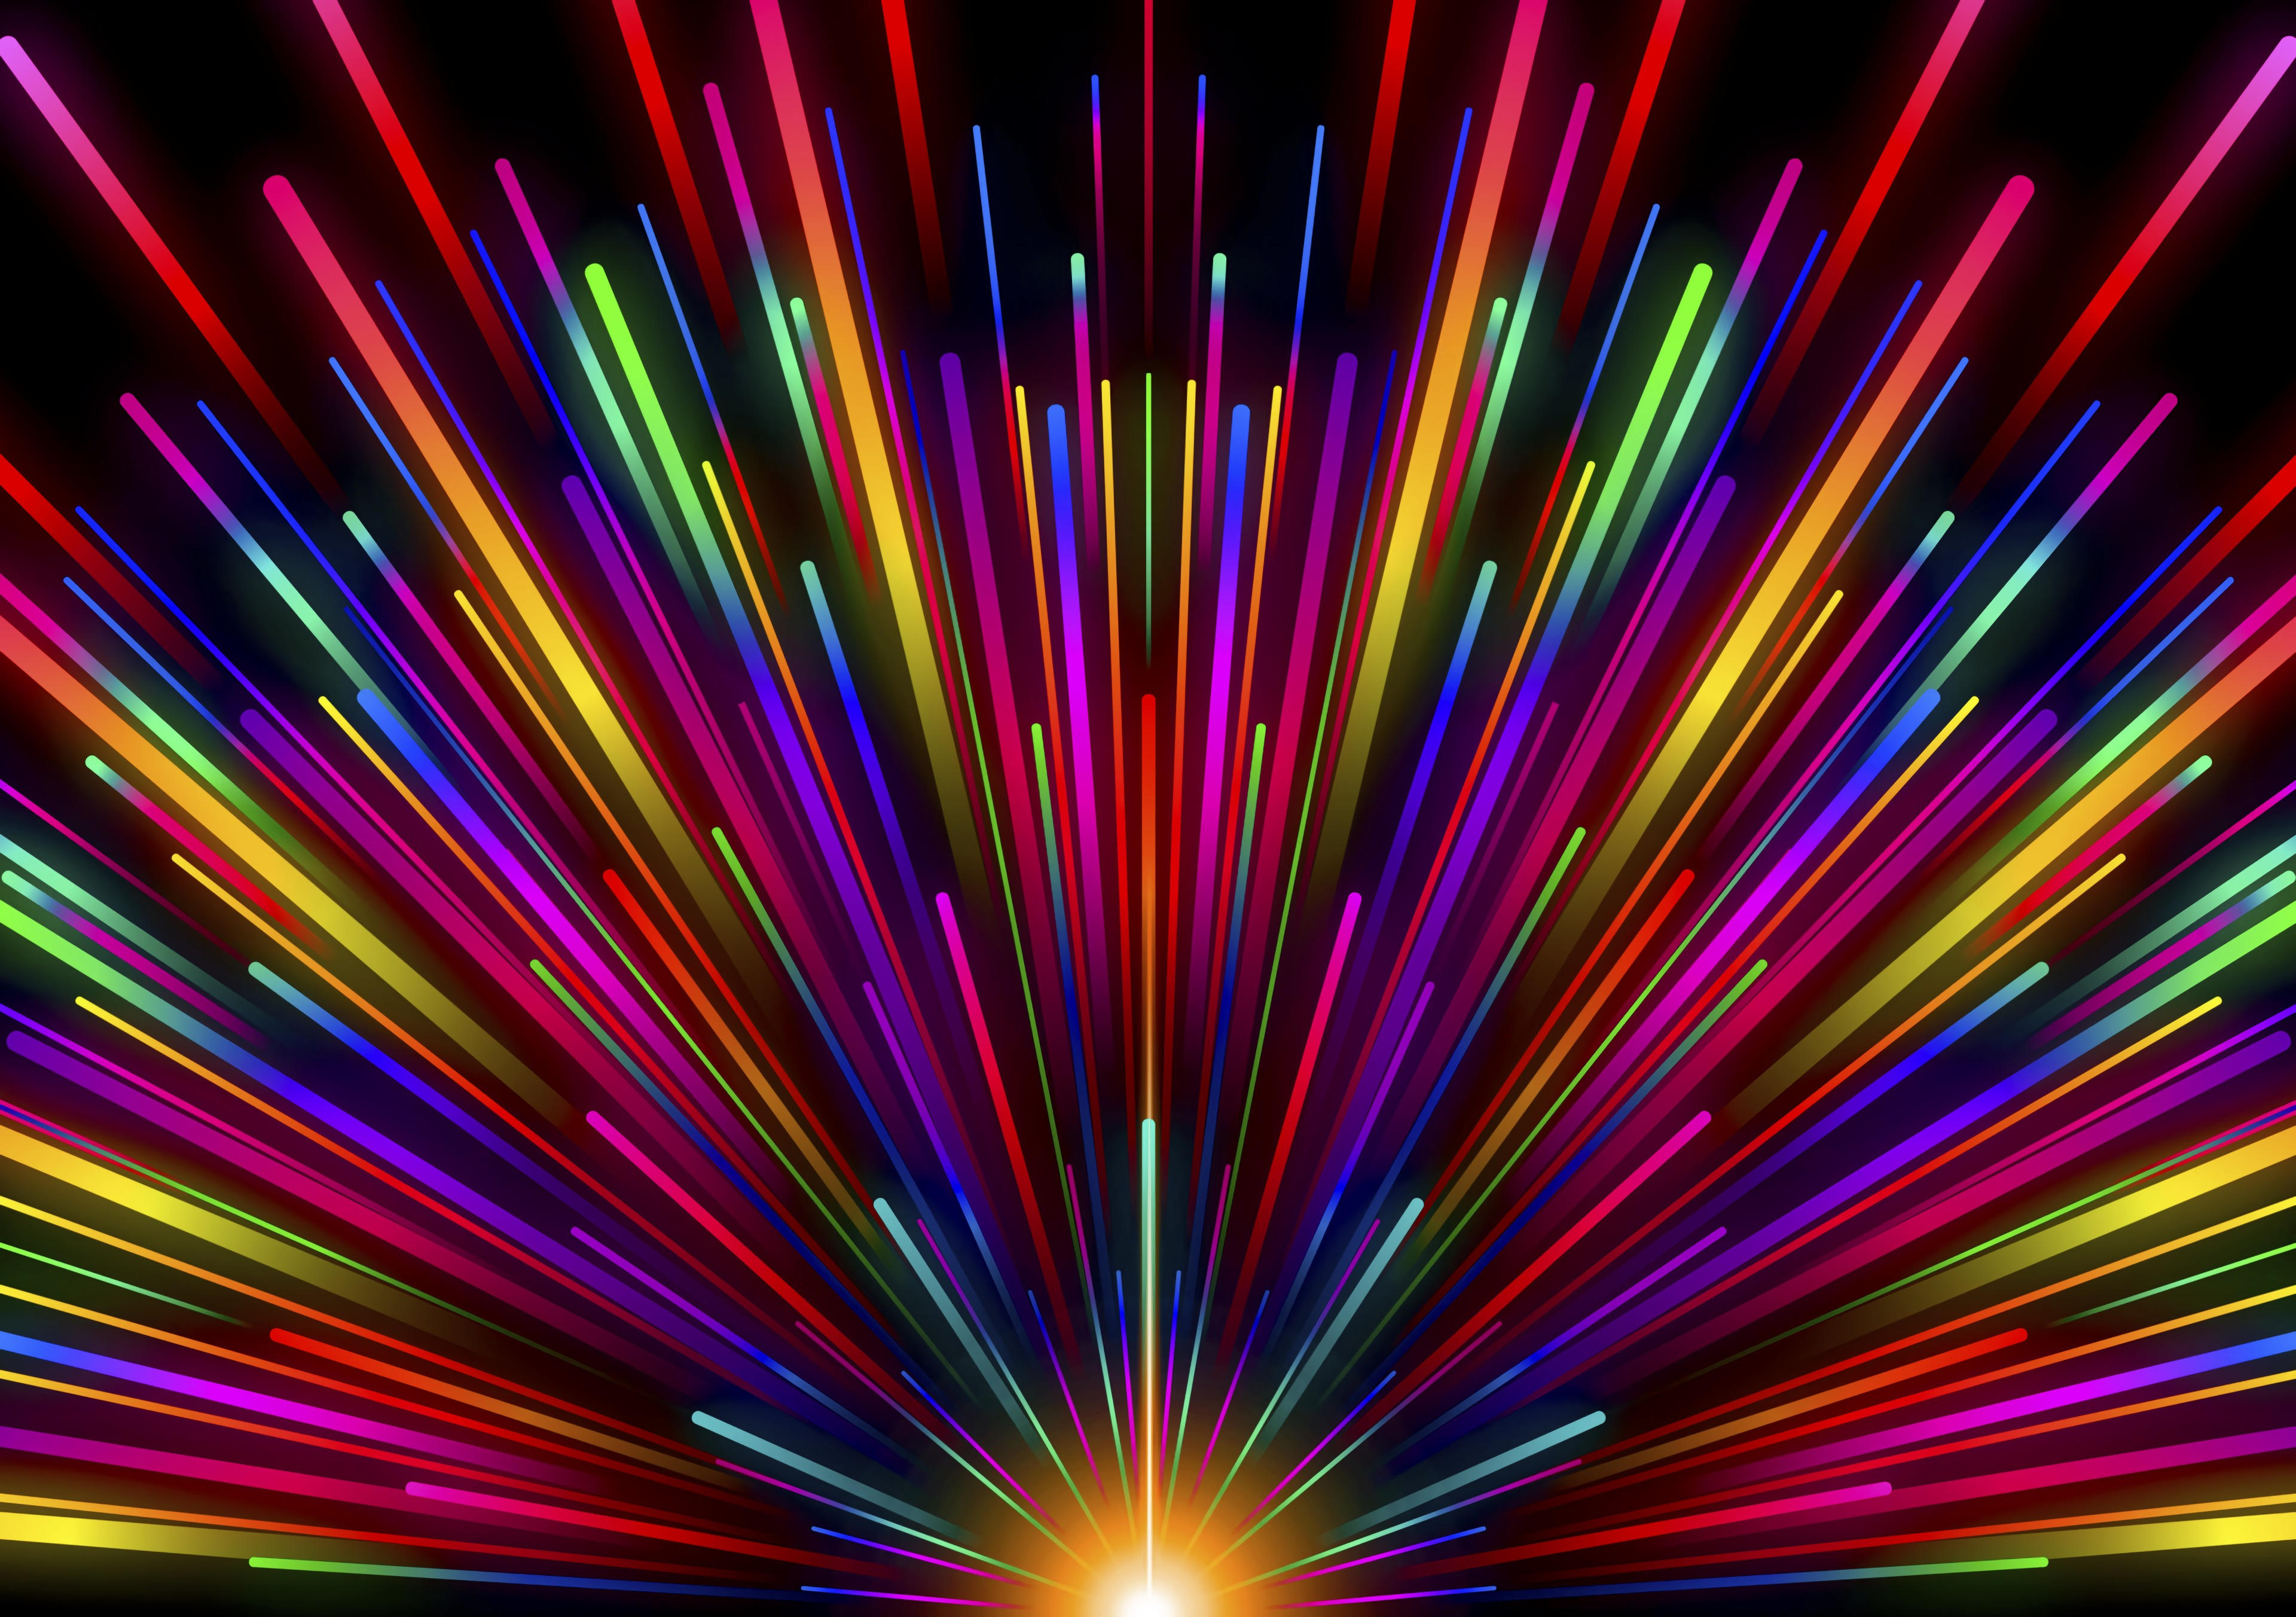 135866 download wallpaper Abstract, Rainbow, Beams, Rays, Multicolored, Motley, Stripes, Streaks, Glow screensavers and pictures for free